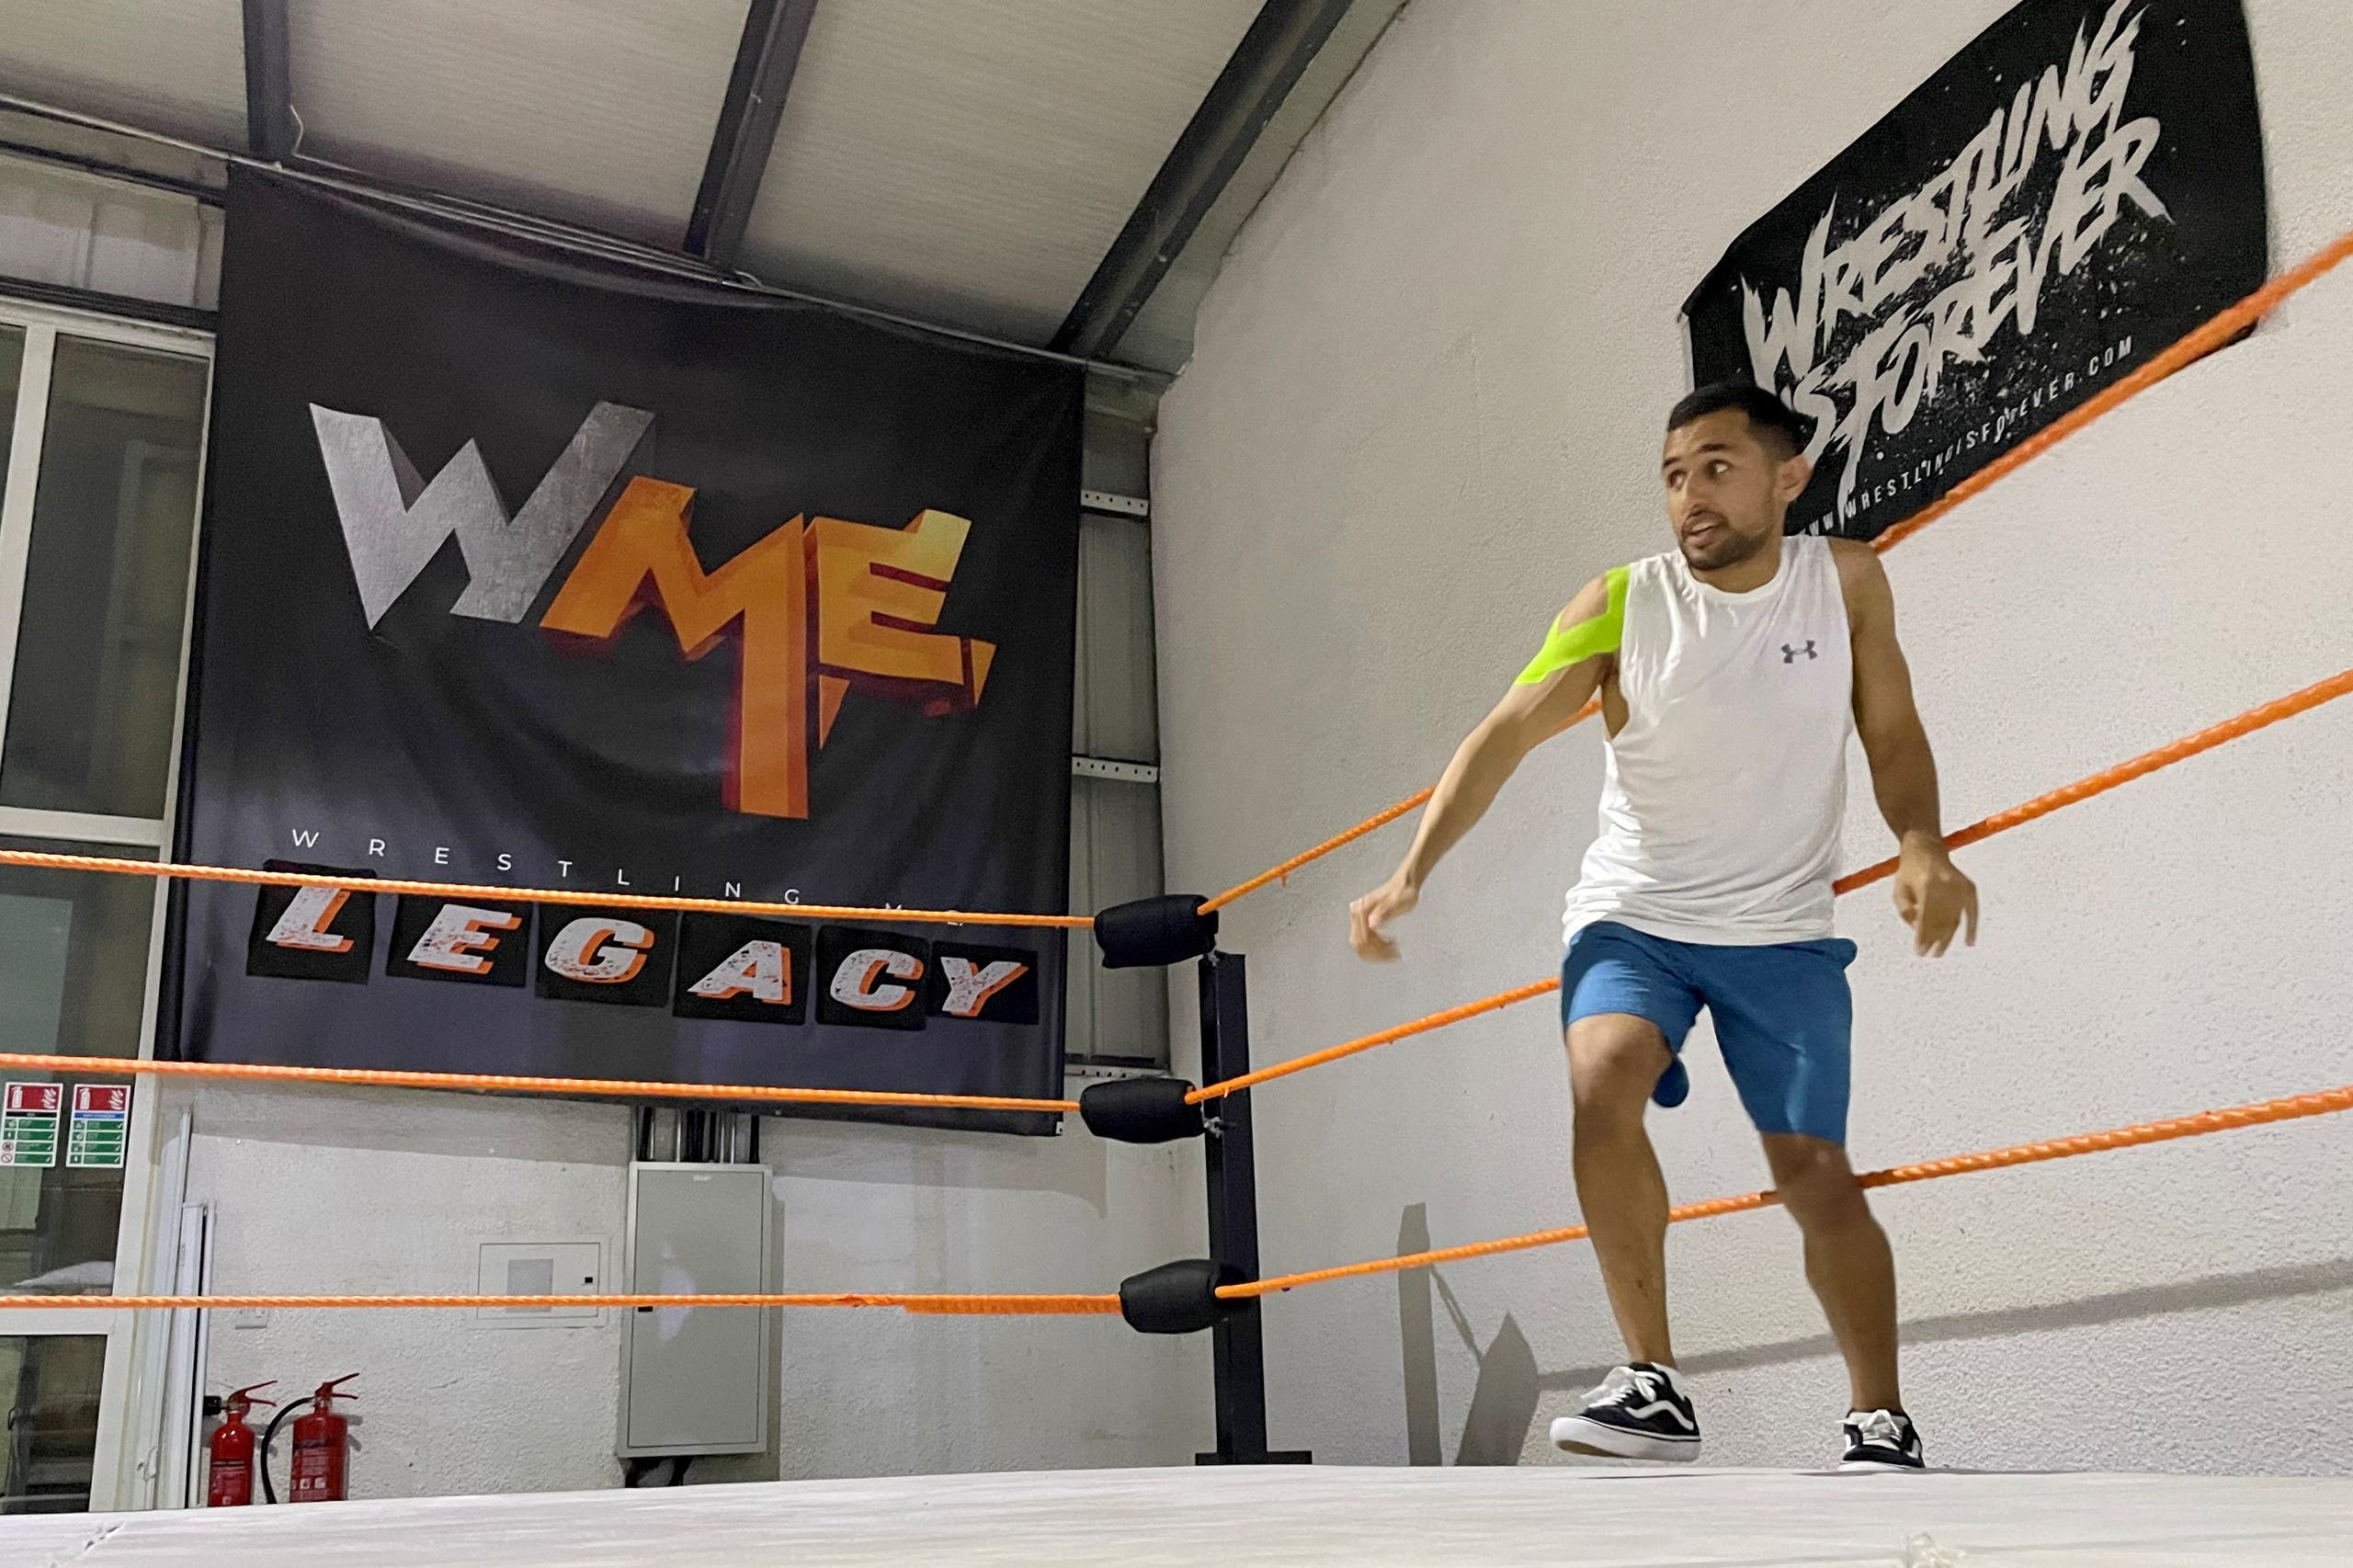 Mohamed Saif, also known as Shaheen, an Emirati wrestler, practices at a pro wrestling club in Dubai, United Arab Emirates, May 27, 2021. Picture taken May 27, 2021. (Reuters)